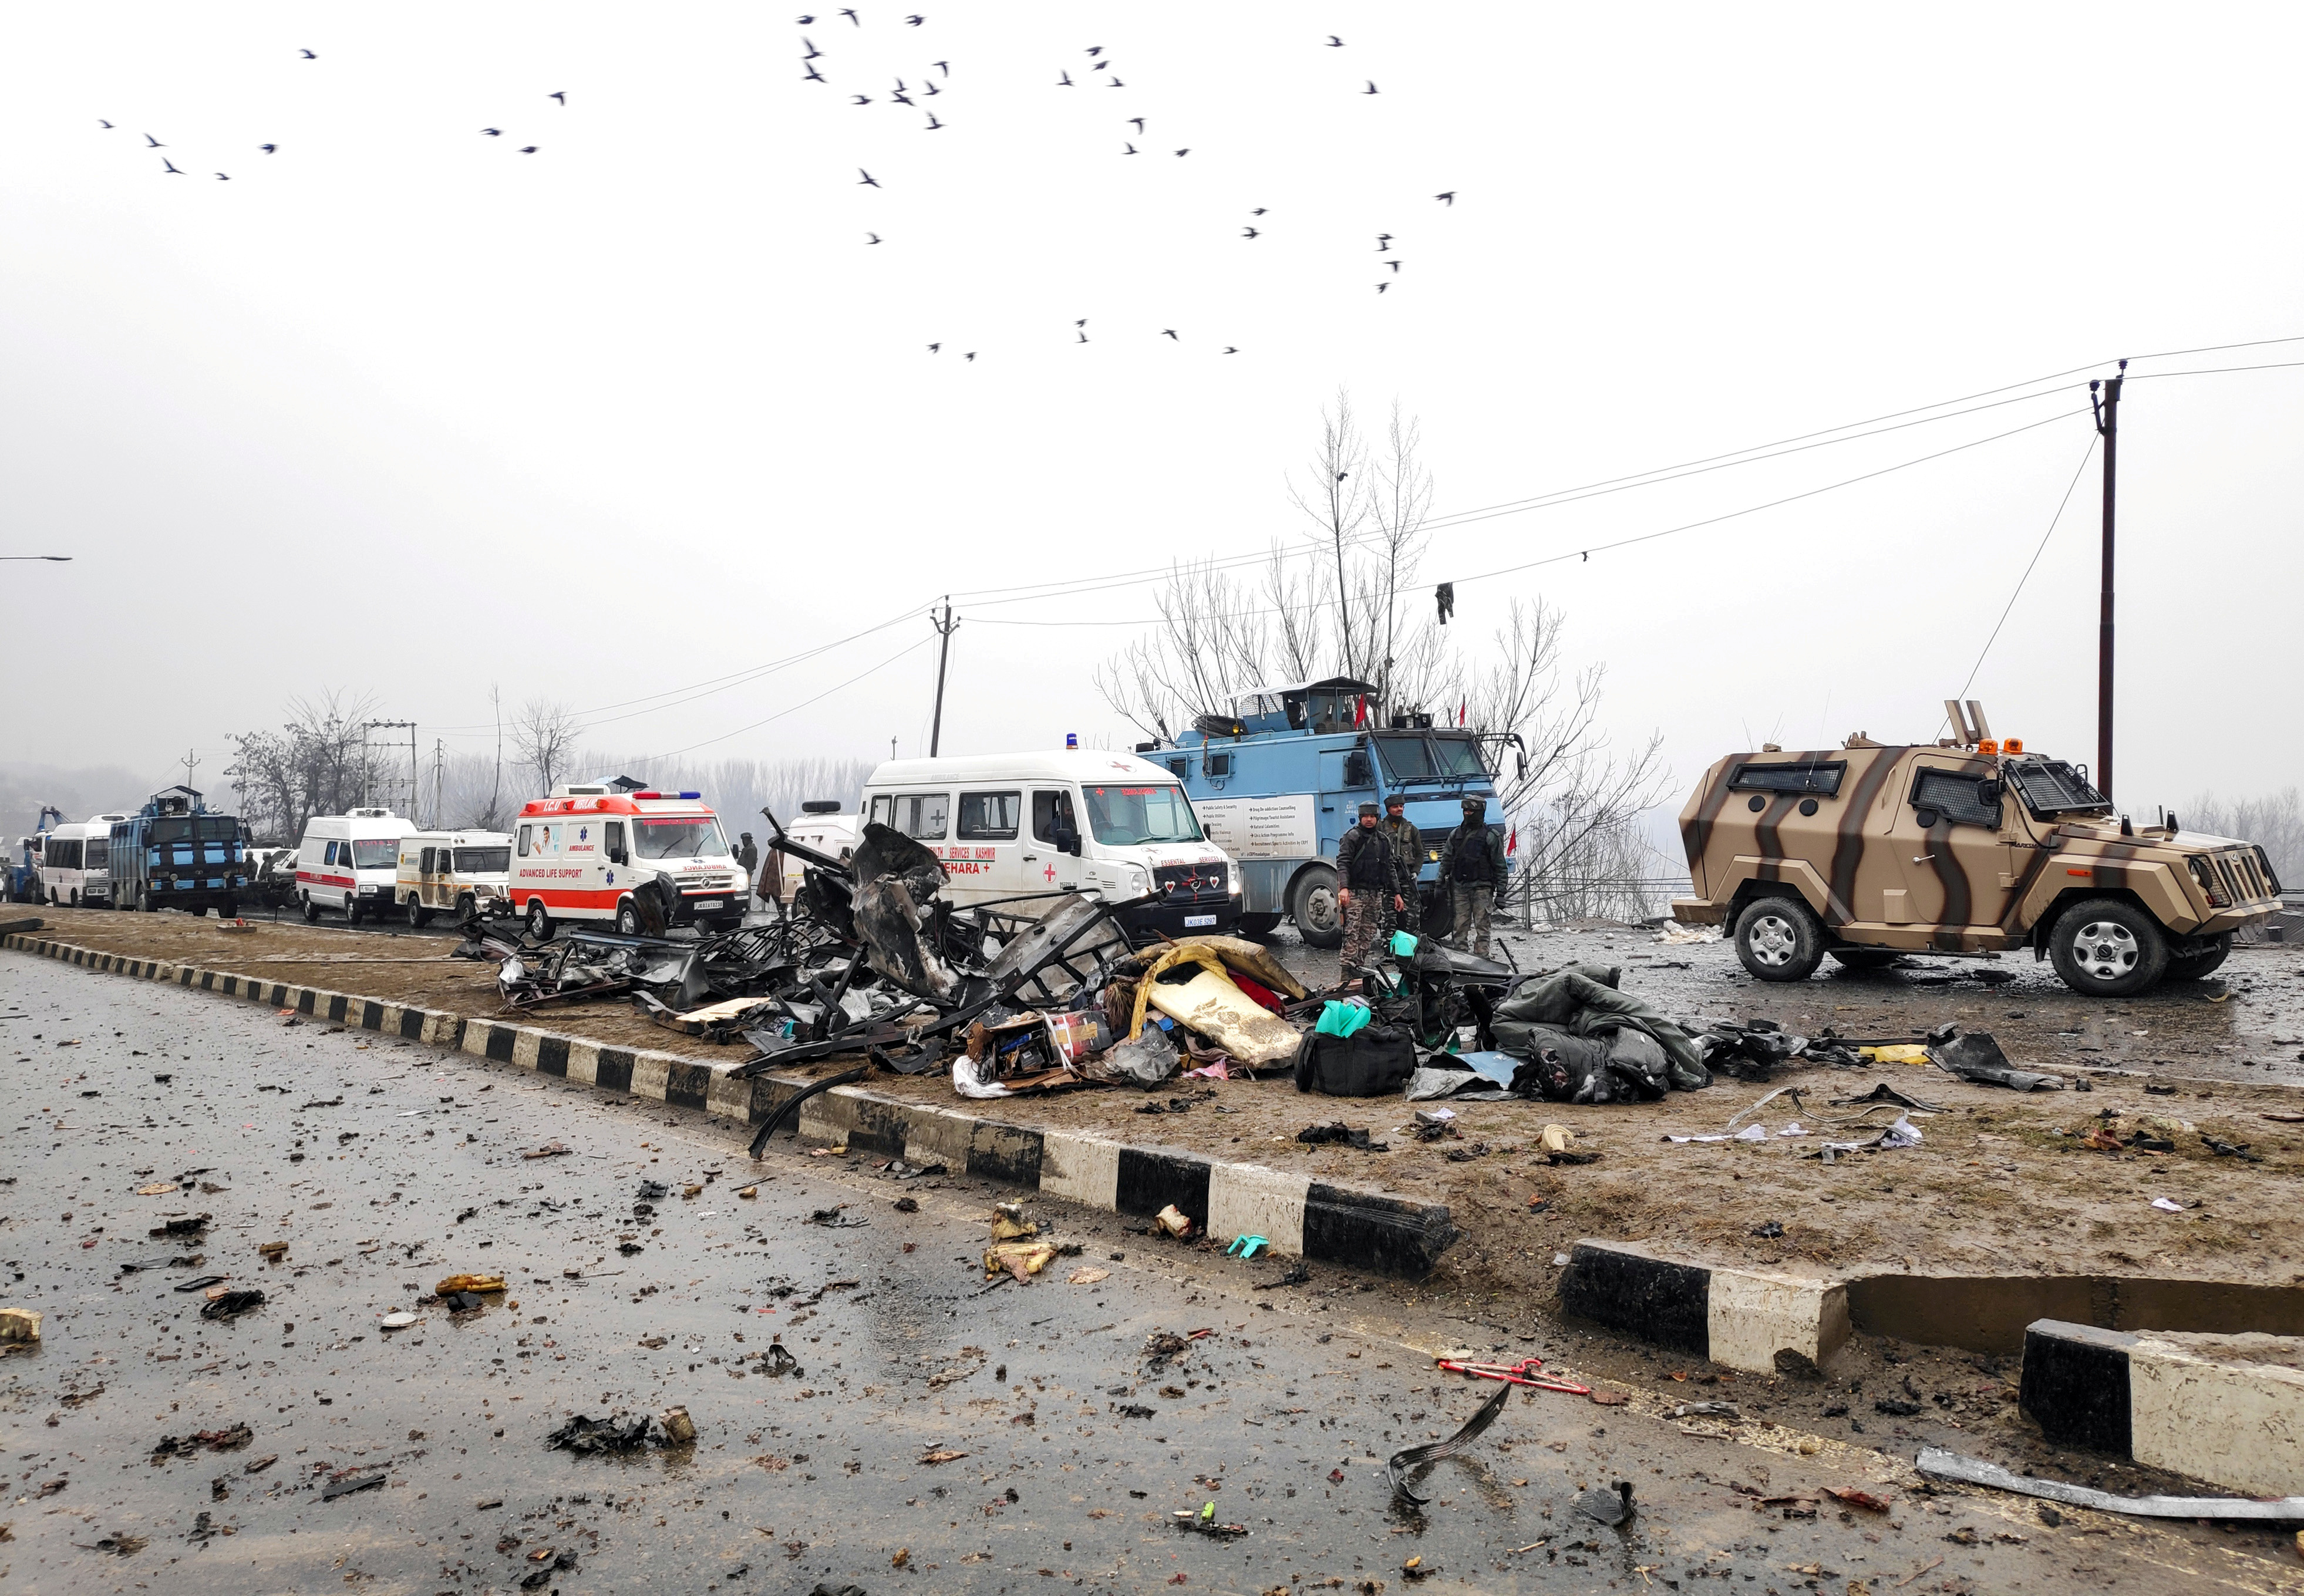 Indian soldiers examine the debris after an explosion in Lethpora in south Kashmir's Pulwama district February 14, 2019. REUTERS/Younis Khaliq/File Photo